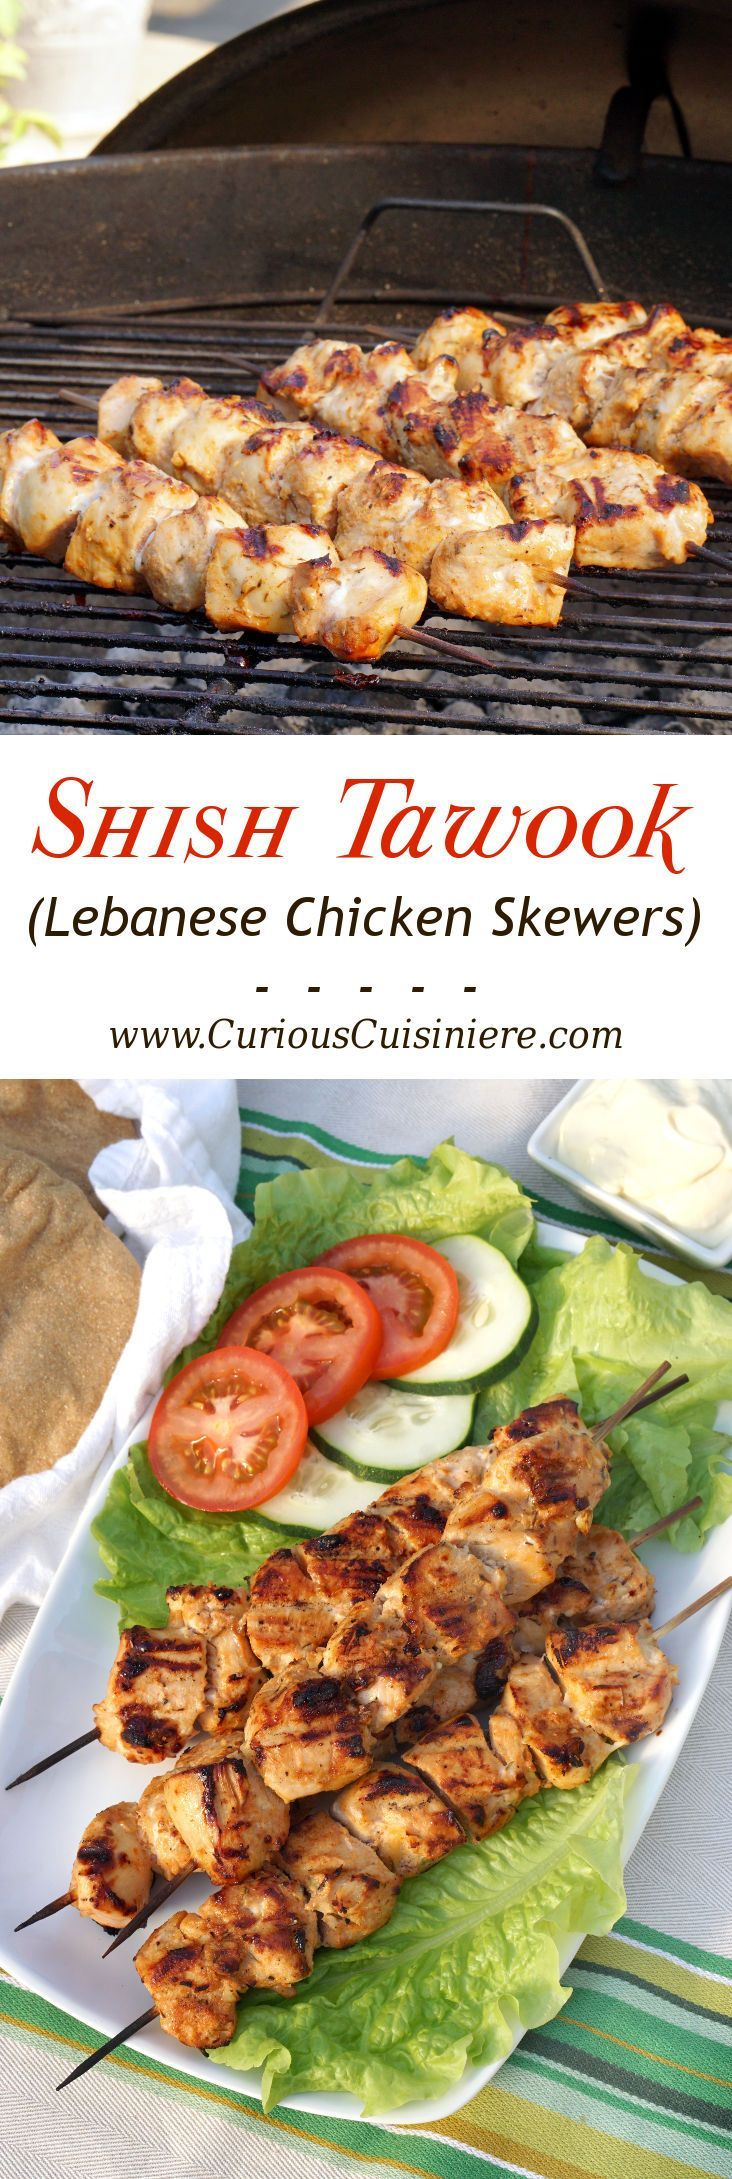 Lemon and garlic bring a burst of flavor to these grilled chicken skewers. Middle Eastern Shish Tawook will make a great addition to your next cookout!  | www.CuriousCuisiniere.com